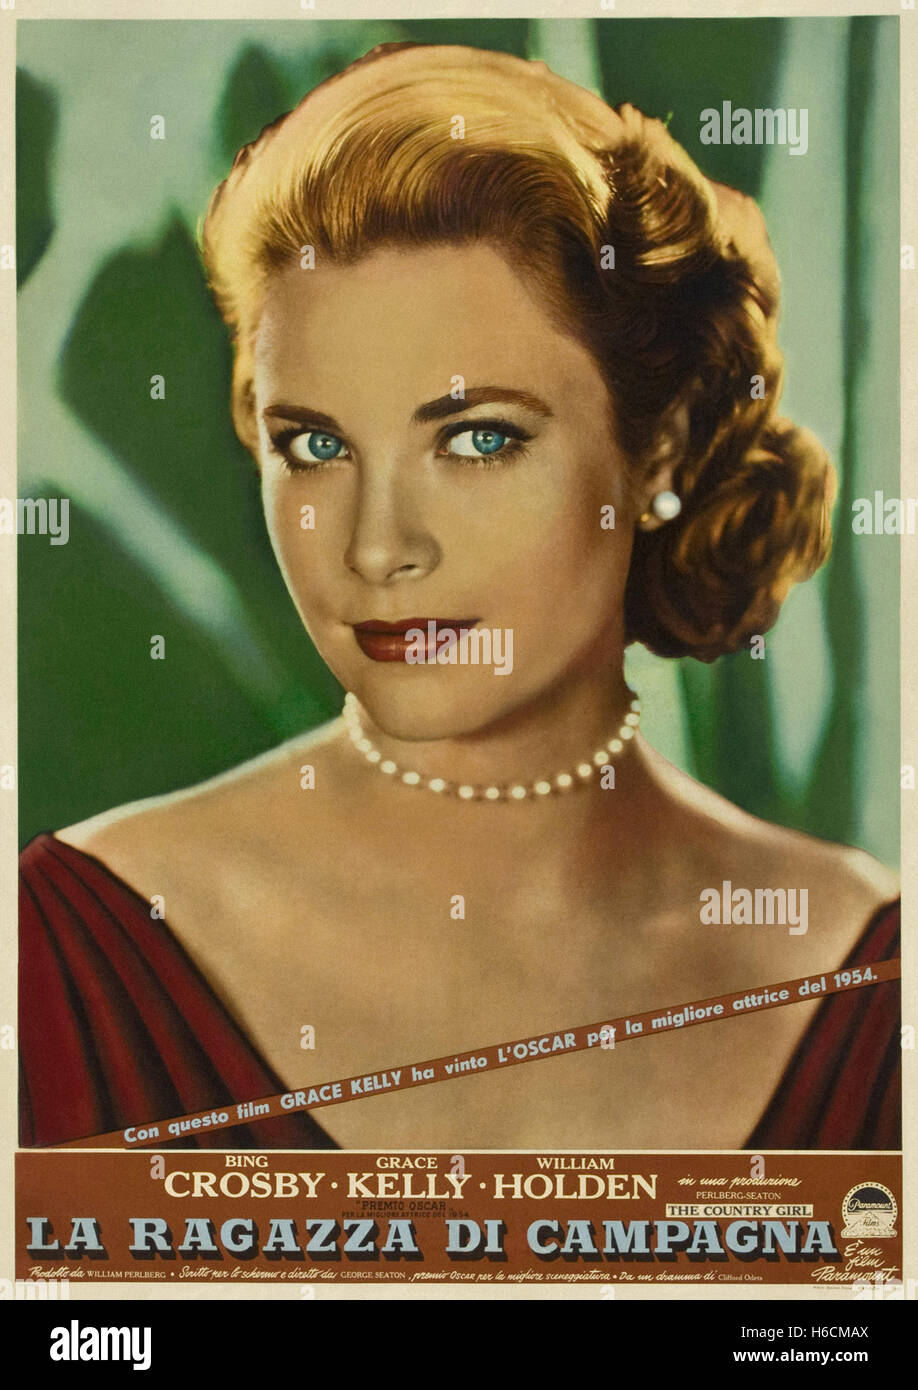 Country Girl, The (1954) - Italian Movie Poster - - Stock Image